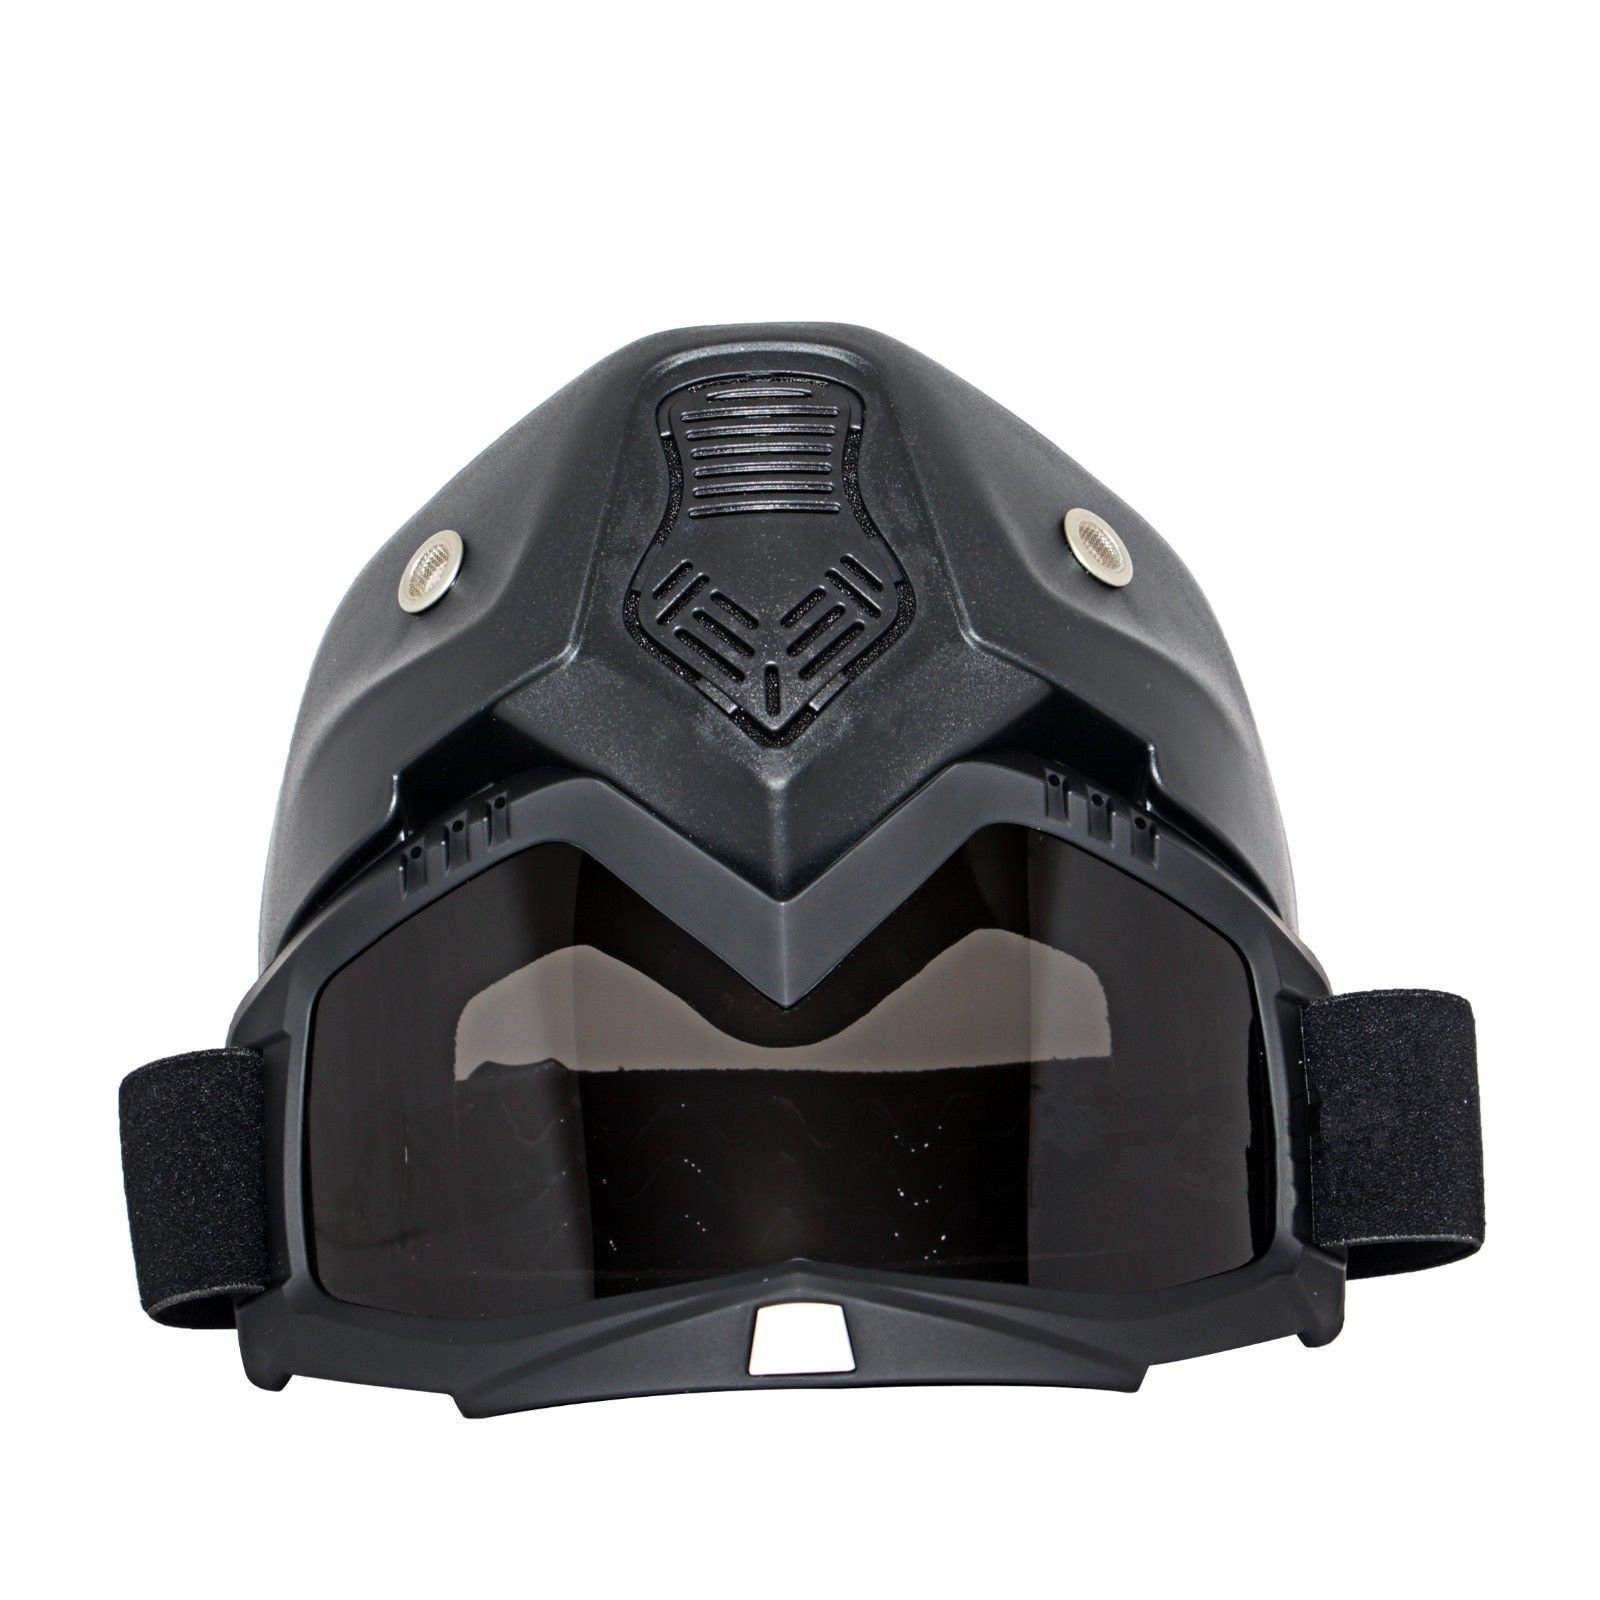 Triclicks Modular Motorcycle Riding Helmet Open Face Mask Shield Goggles Detachable by Triclicks (Image #4)